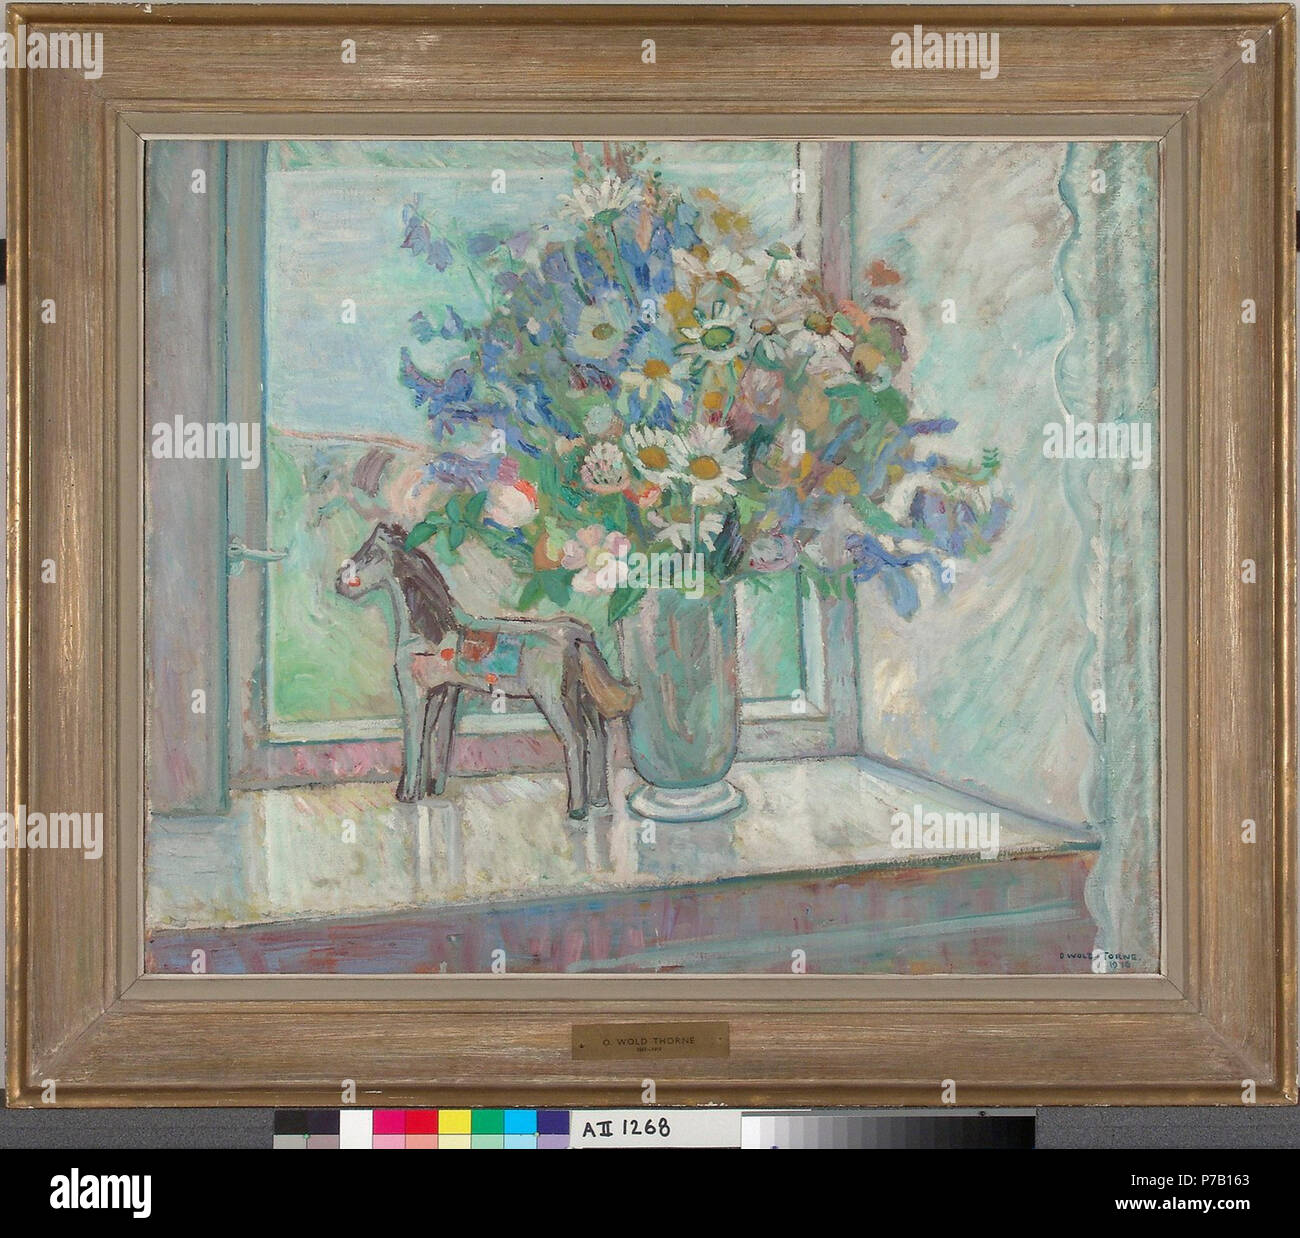 . Q20782602  1916 60 Oluf Wold-Torne - Kukkia - A II 1268 - Finnish National Gallery - Stock Image